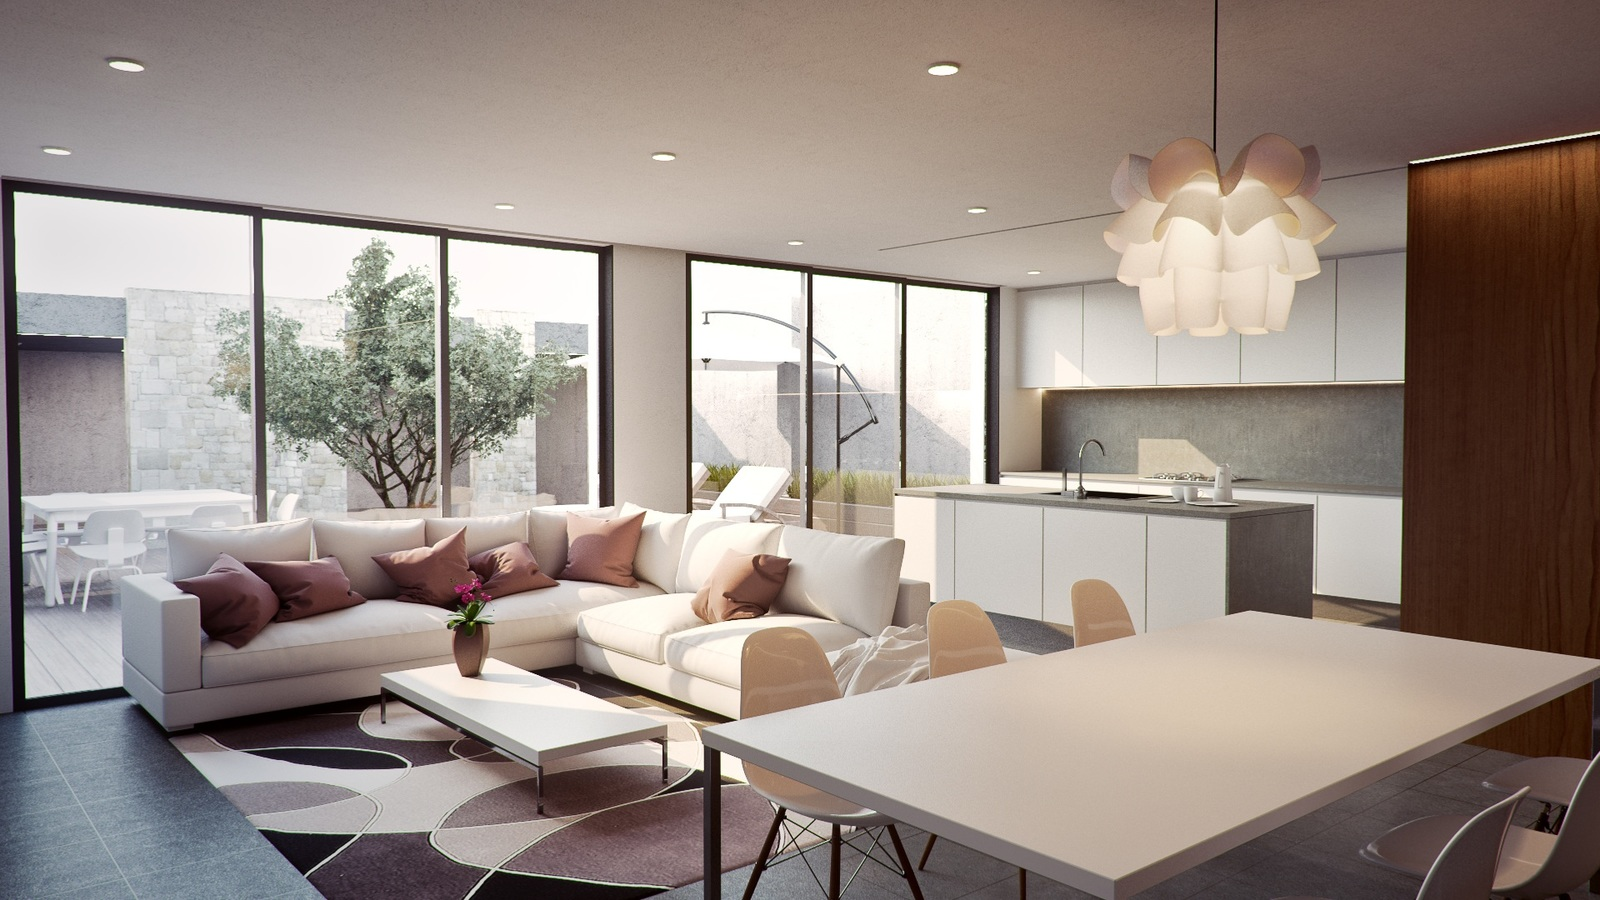 Interior_Design_how_to_light_your_home-for_maximum_effect_Doreen_Chambers_luxury_interior_design_Brooklyn_New-York_Fort_Lauderdale_Miami